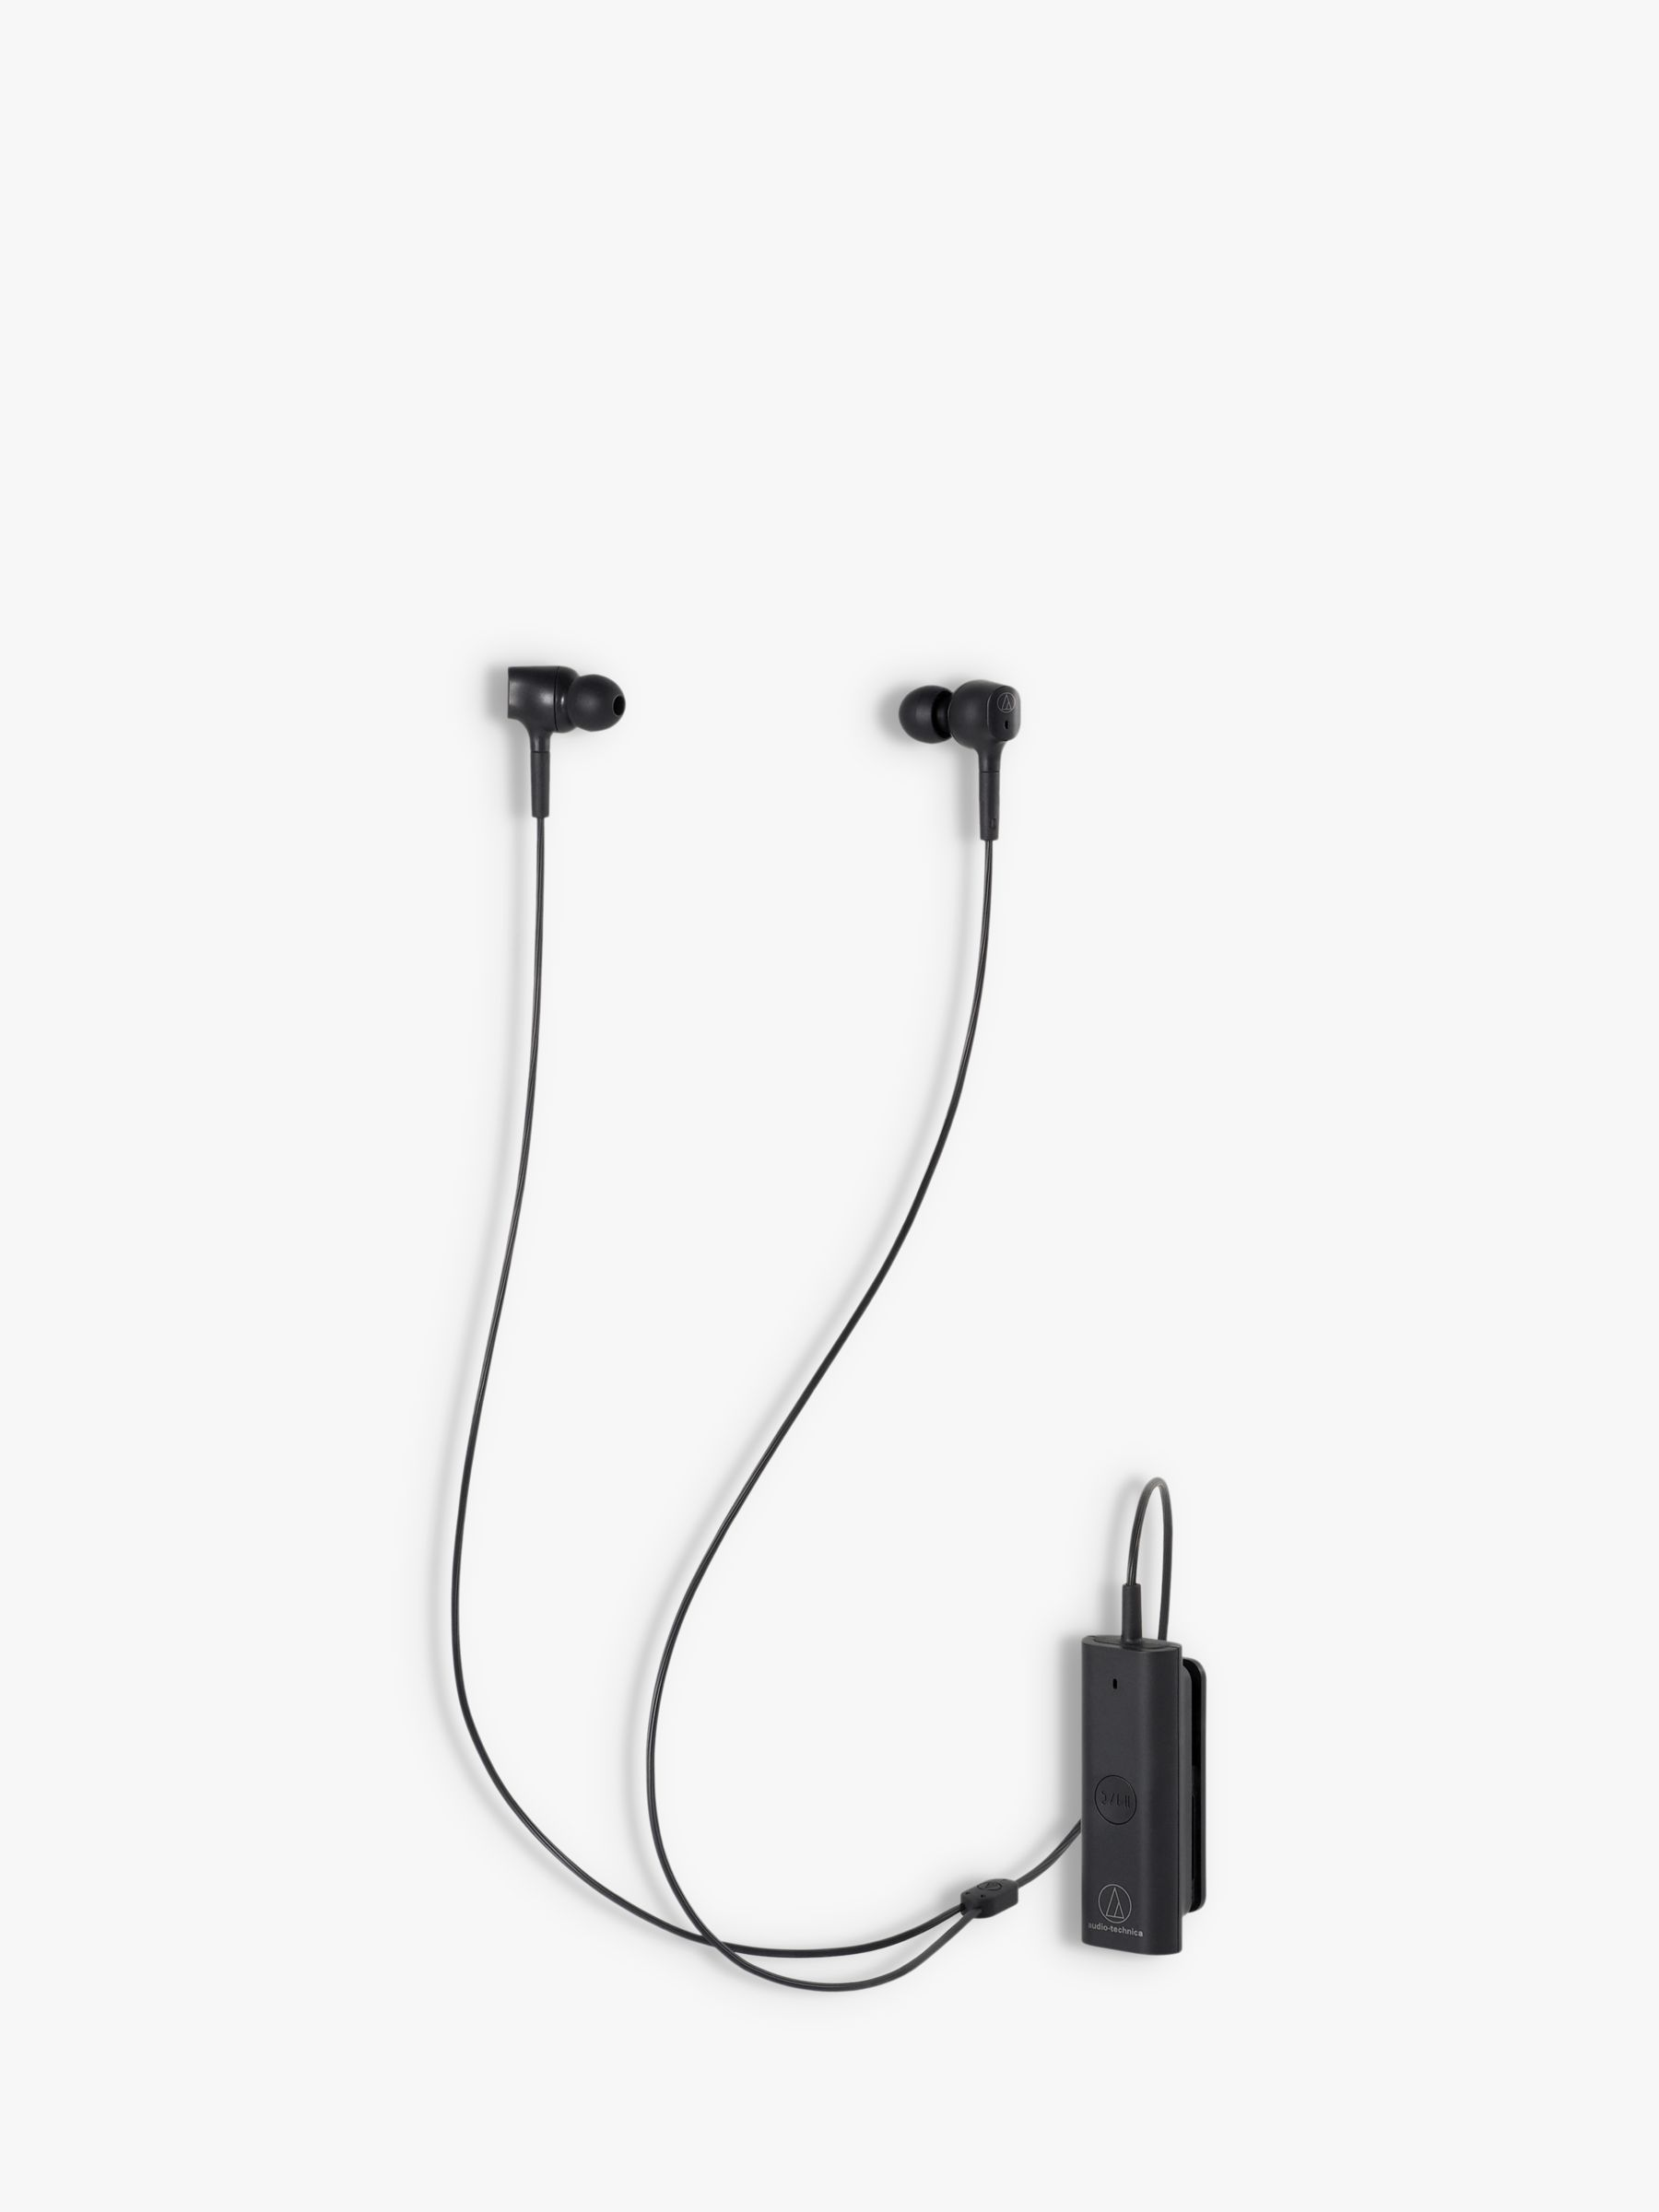 Audio-Technica Audio-Technica ATH-ANC100BT Active Noise-Cancelling Wireless Bluetooth In-Ear Headphones with Mic/Remote, Black